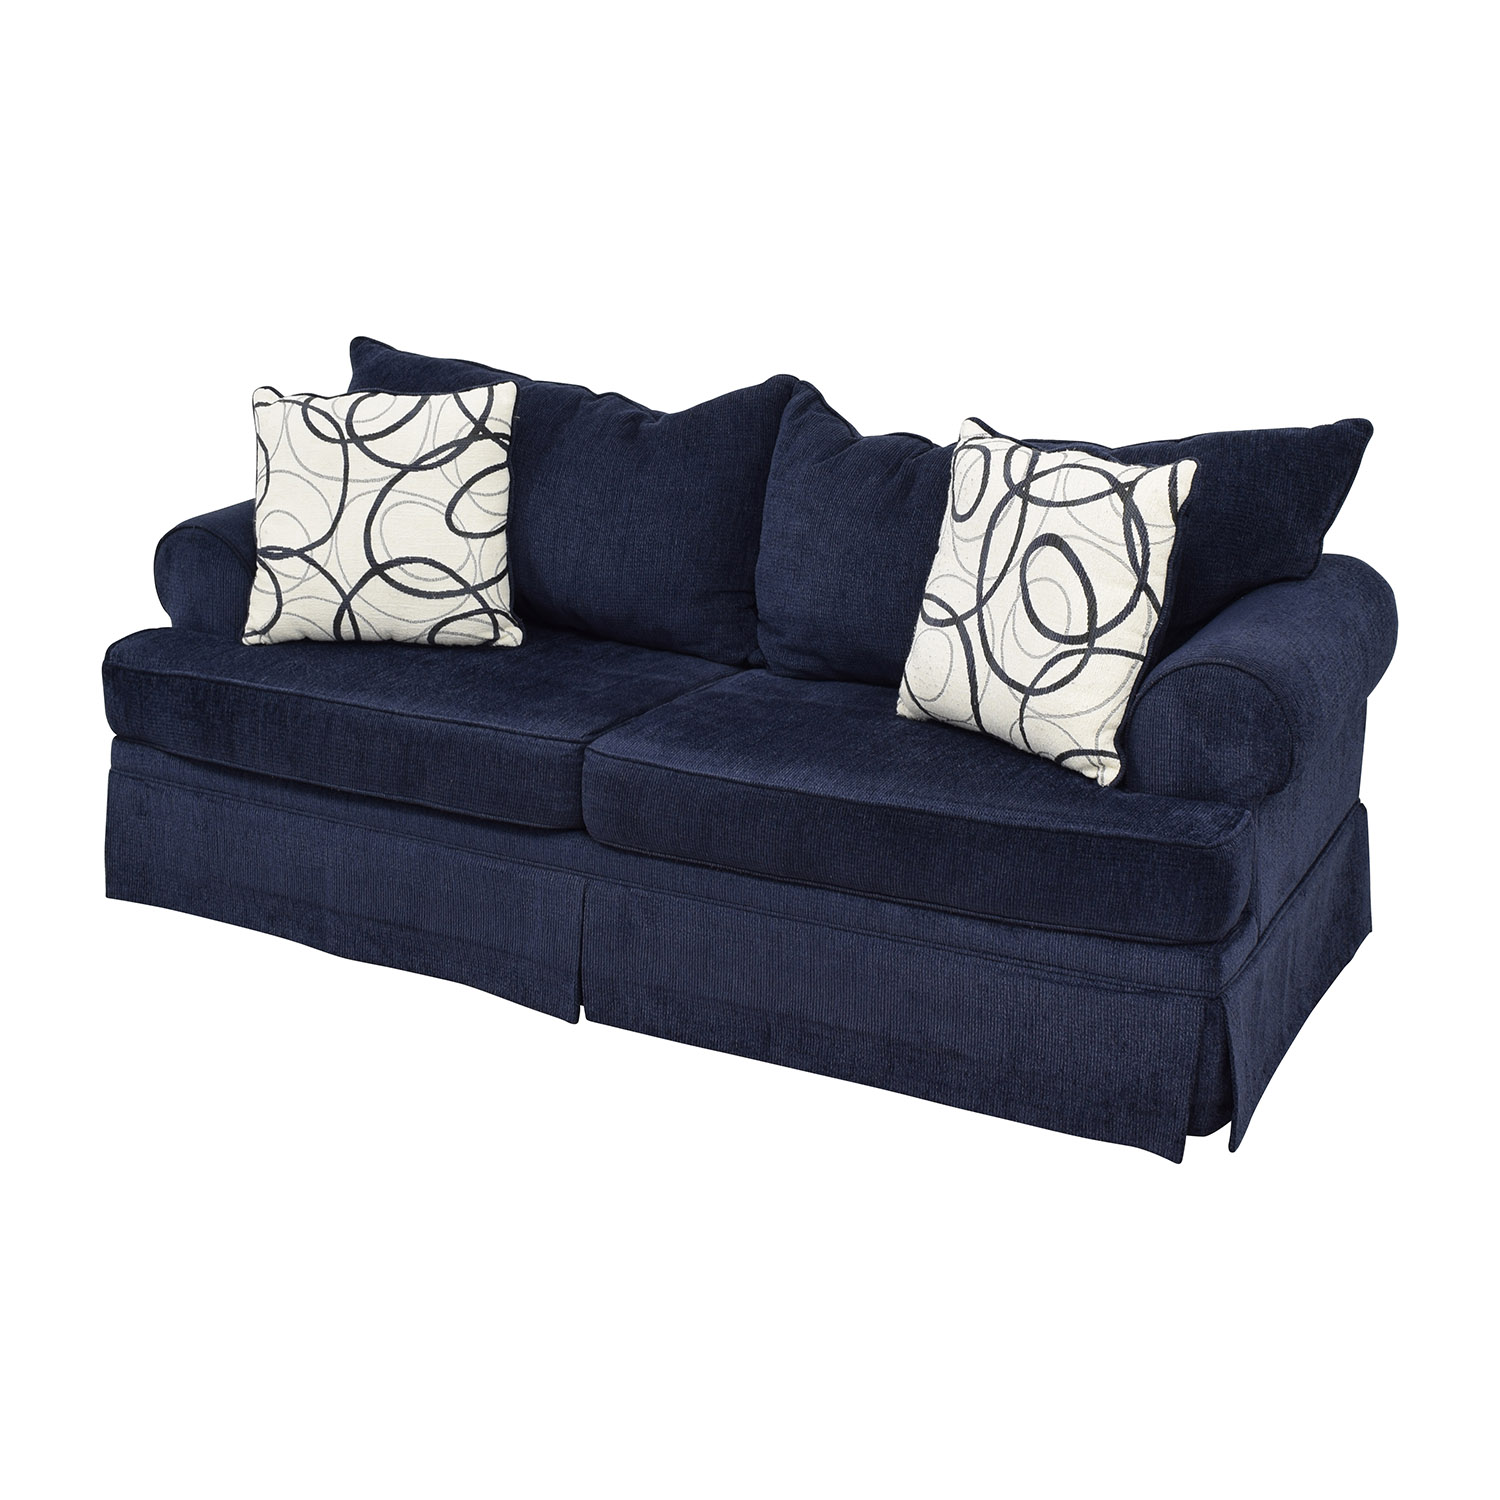 66% OFF Bob s Furniture Bob s Furniture Deep Blue Sofa Sofas